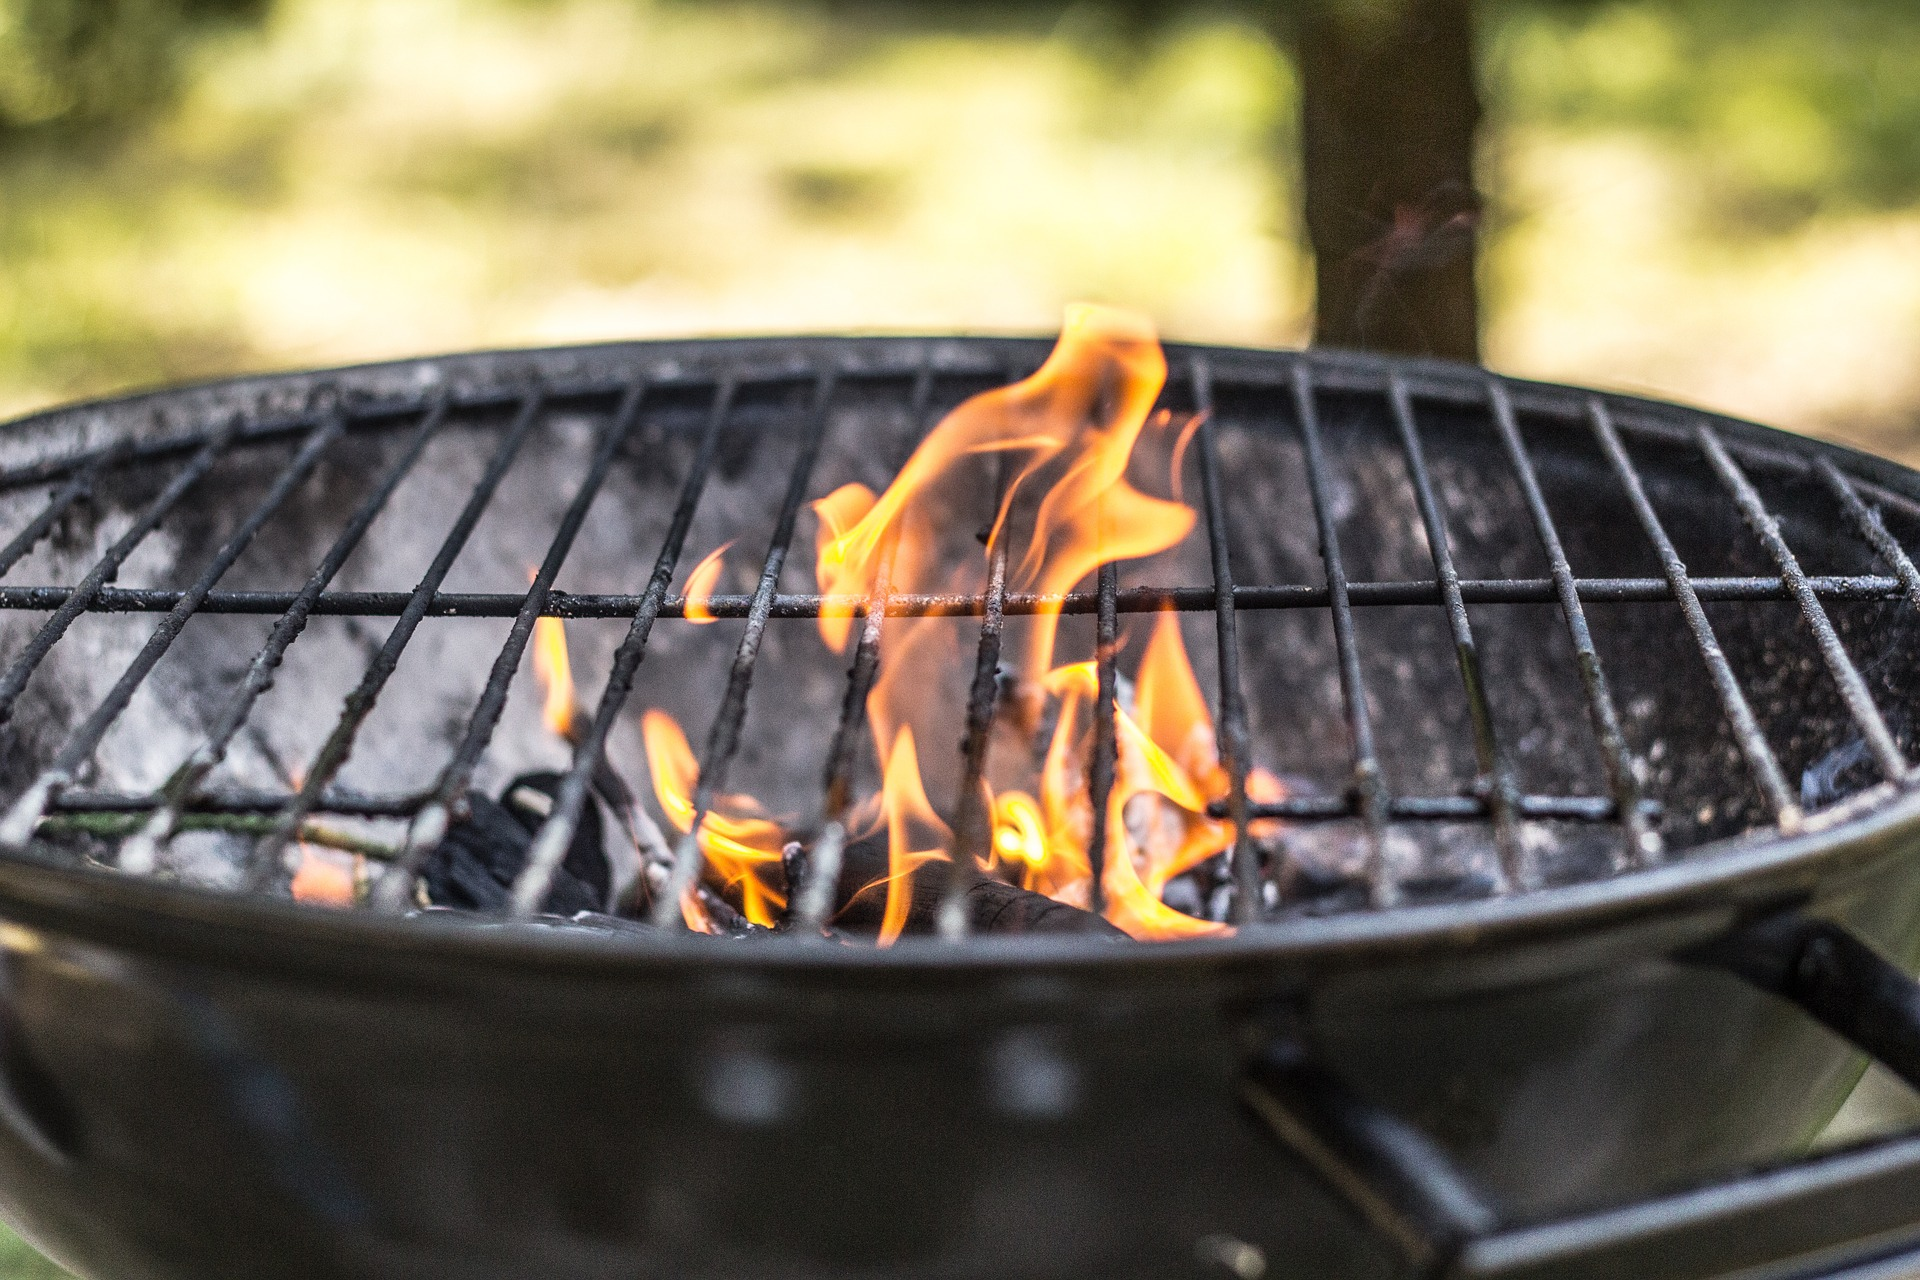 A picture of a BBQ